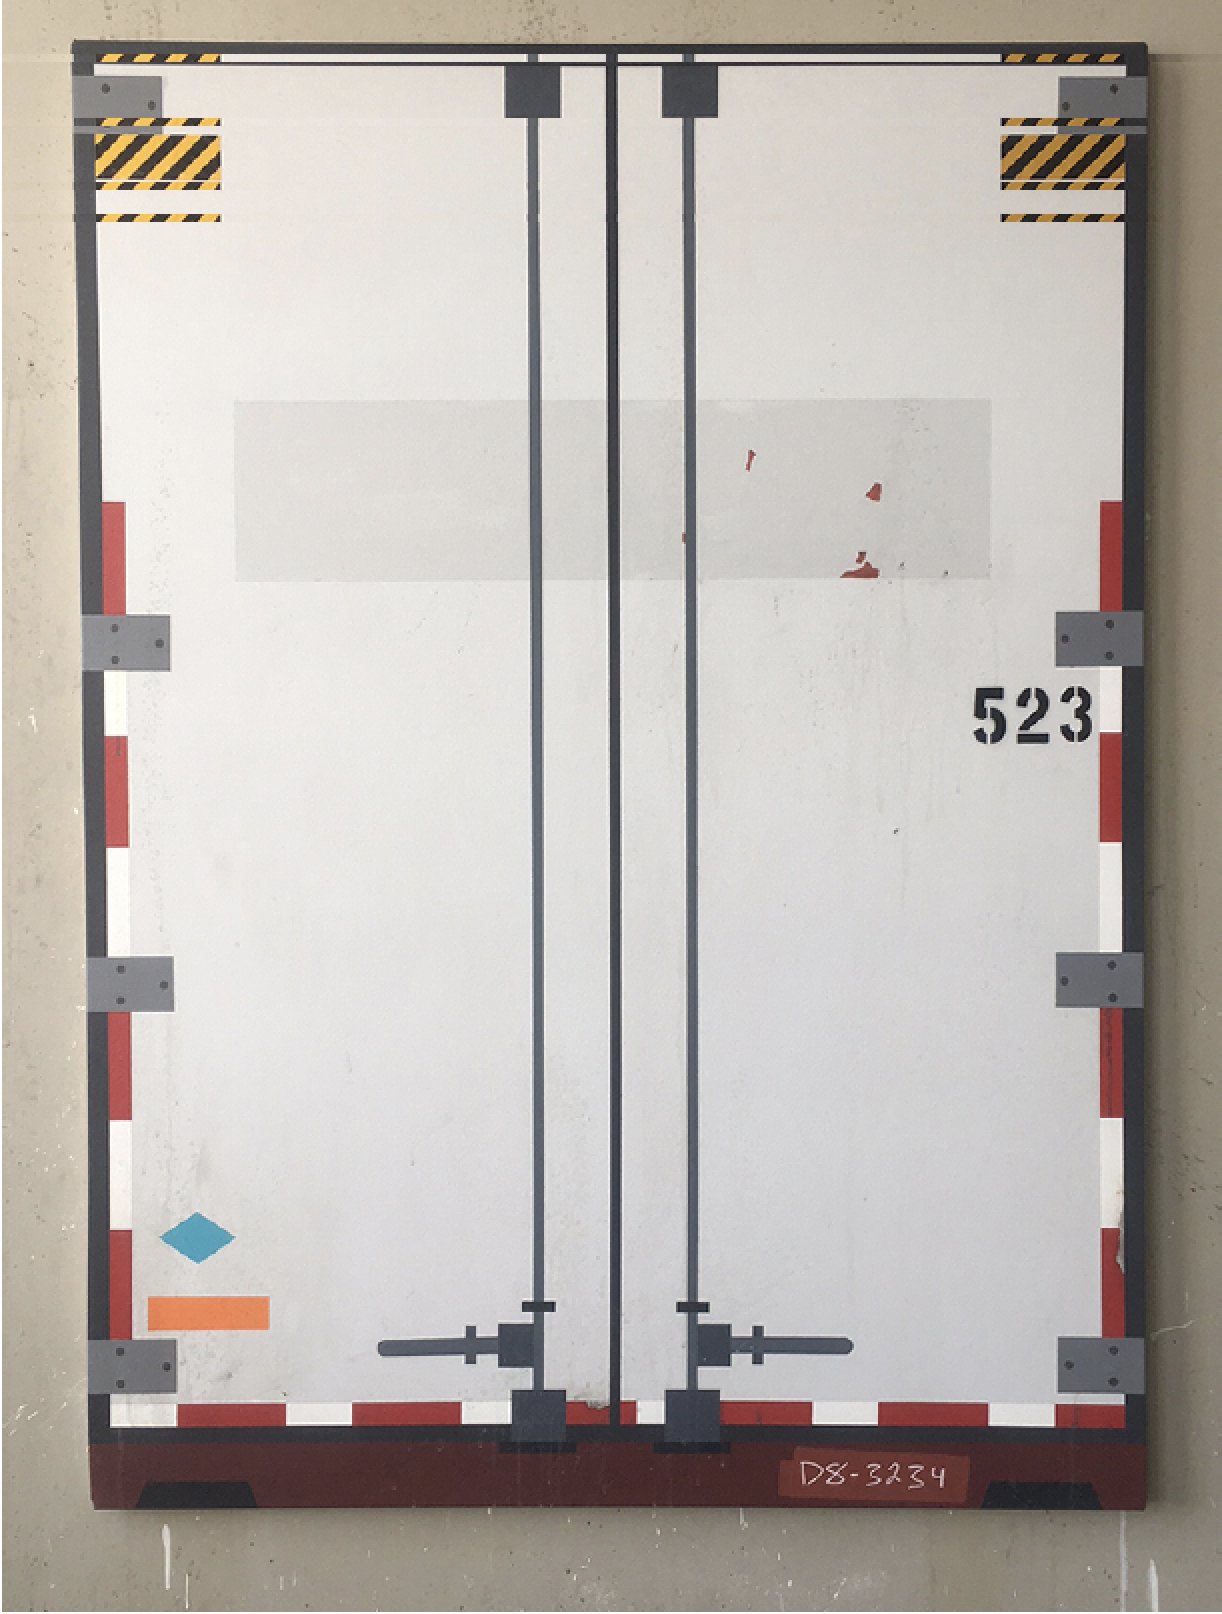 Big Rig (Laser), 2019  Acrylic, vinyl and pigmented iron on canvas, 66 x 48, $7000  THIS IS NUMBER 11 IN A SERIES OF 12!